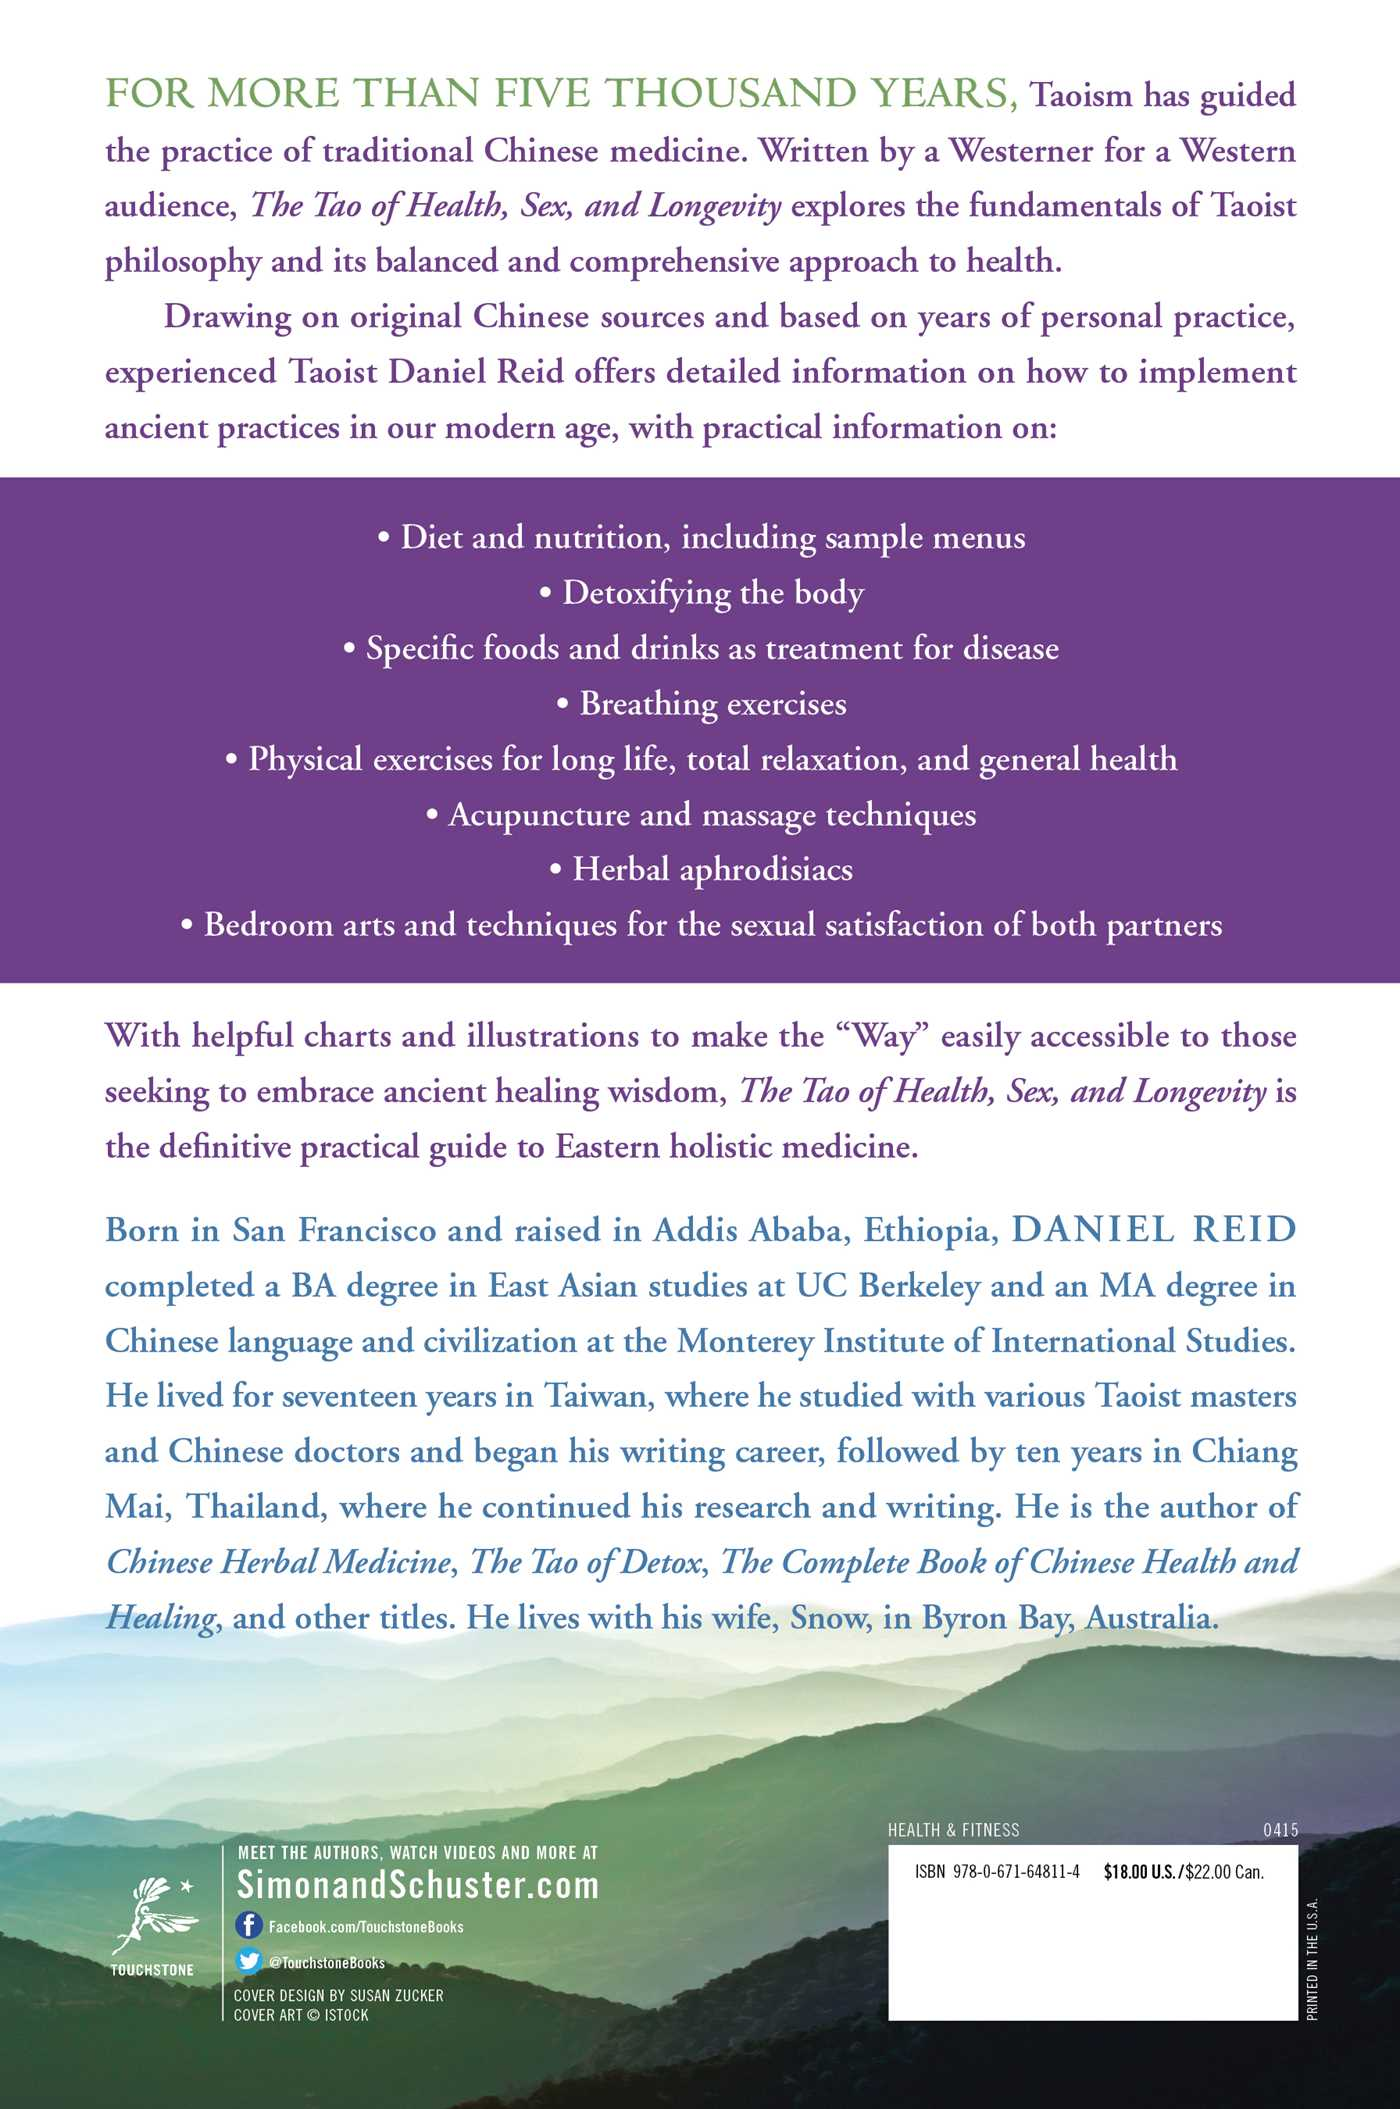 The Tao Of Health, Sex, and Longevity Book di Daniel Reid Pagina ufficiale dell'editore-9278